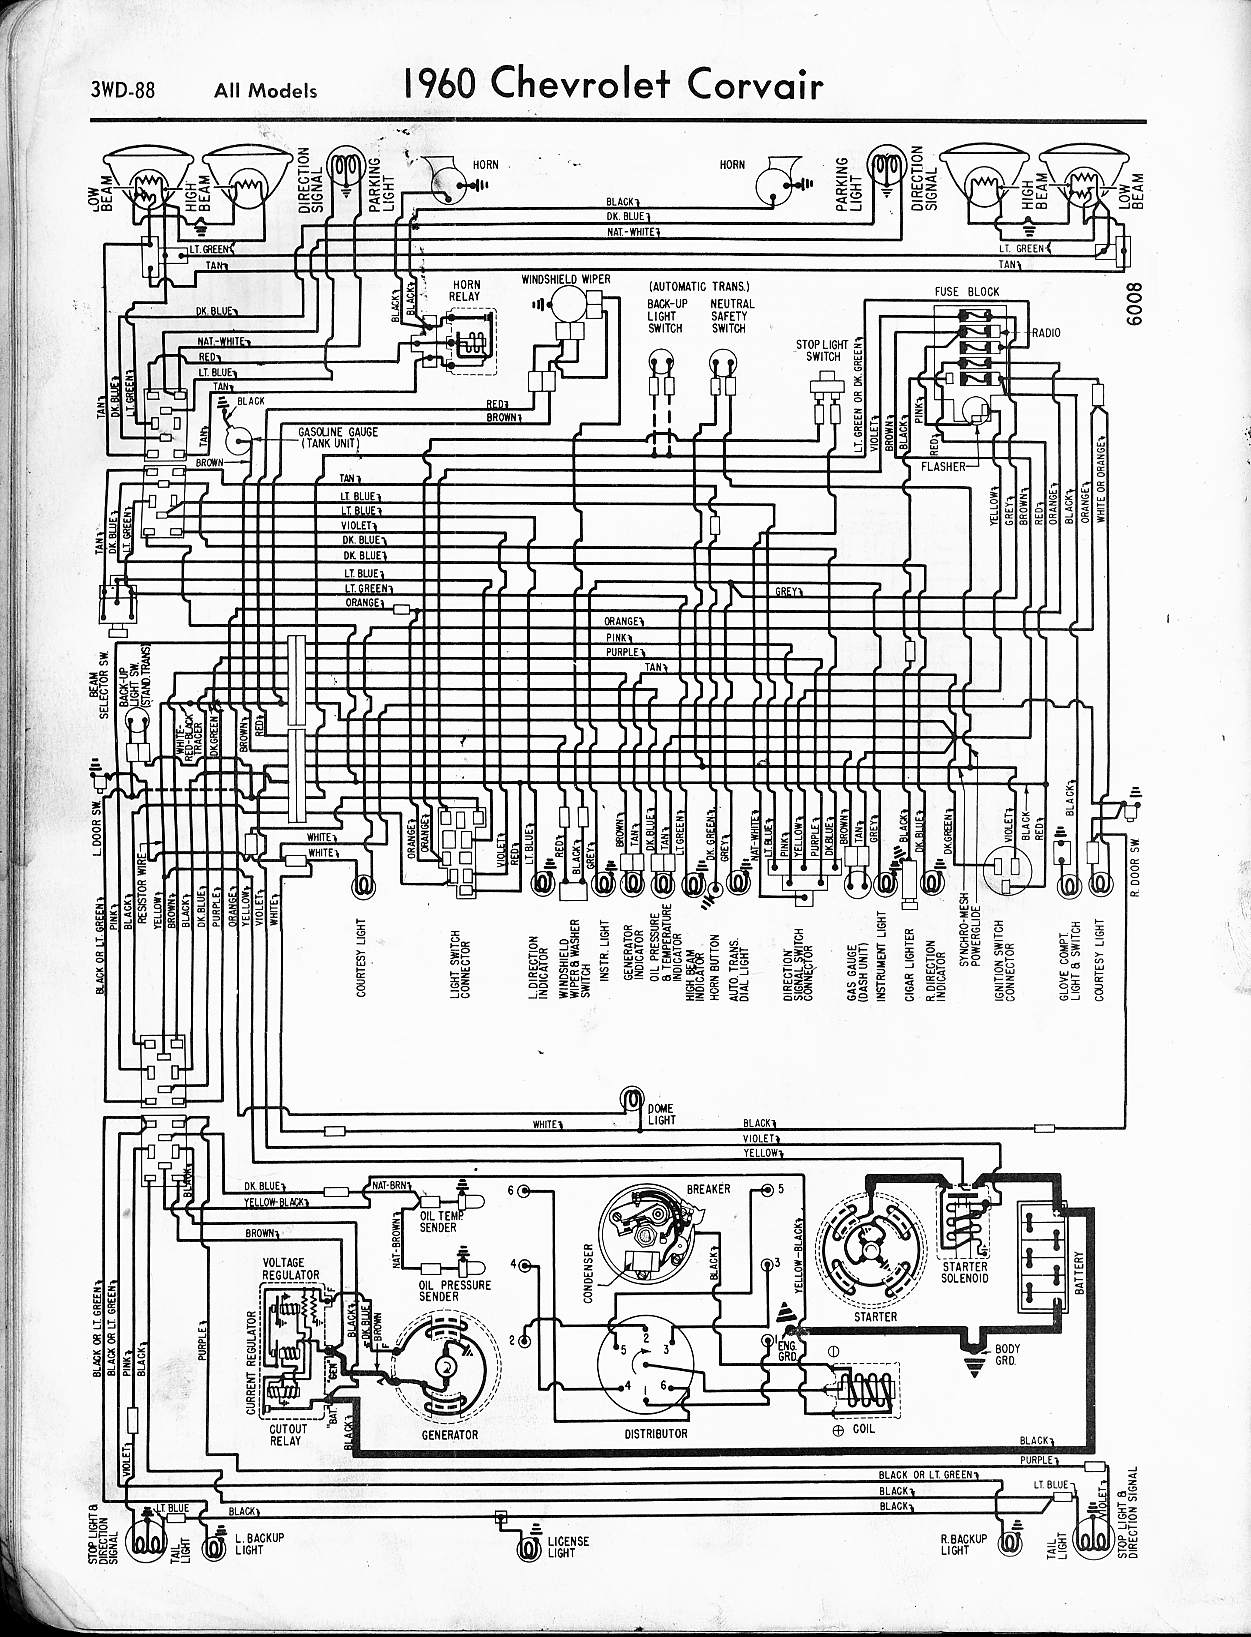 MWireChev60_3WD 088 57 65 chevy wiring diagrams 1960 corvette wiring diagram at panicattacktreatment.co